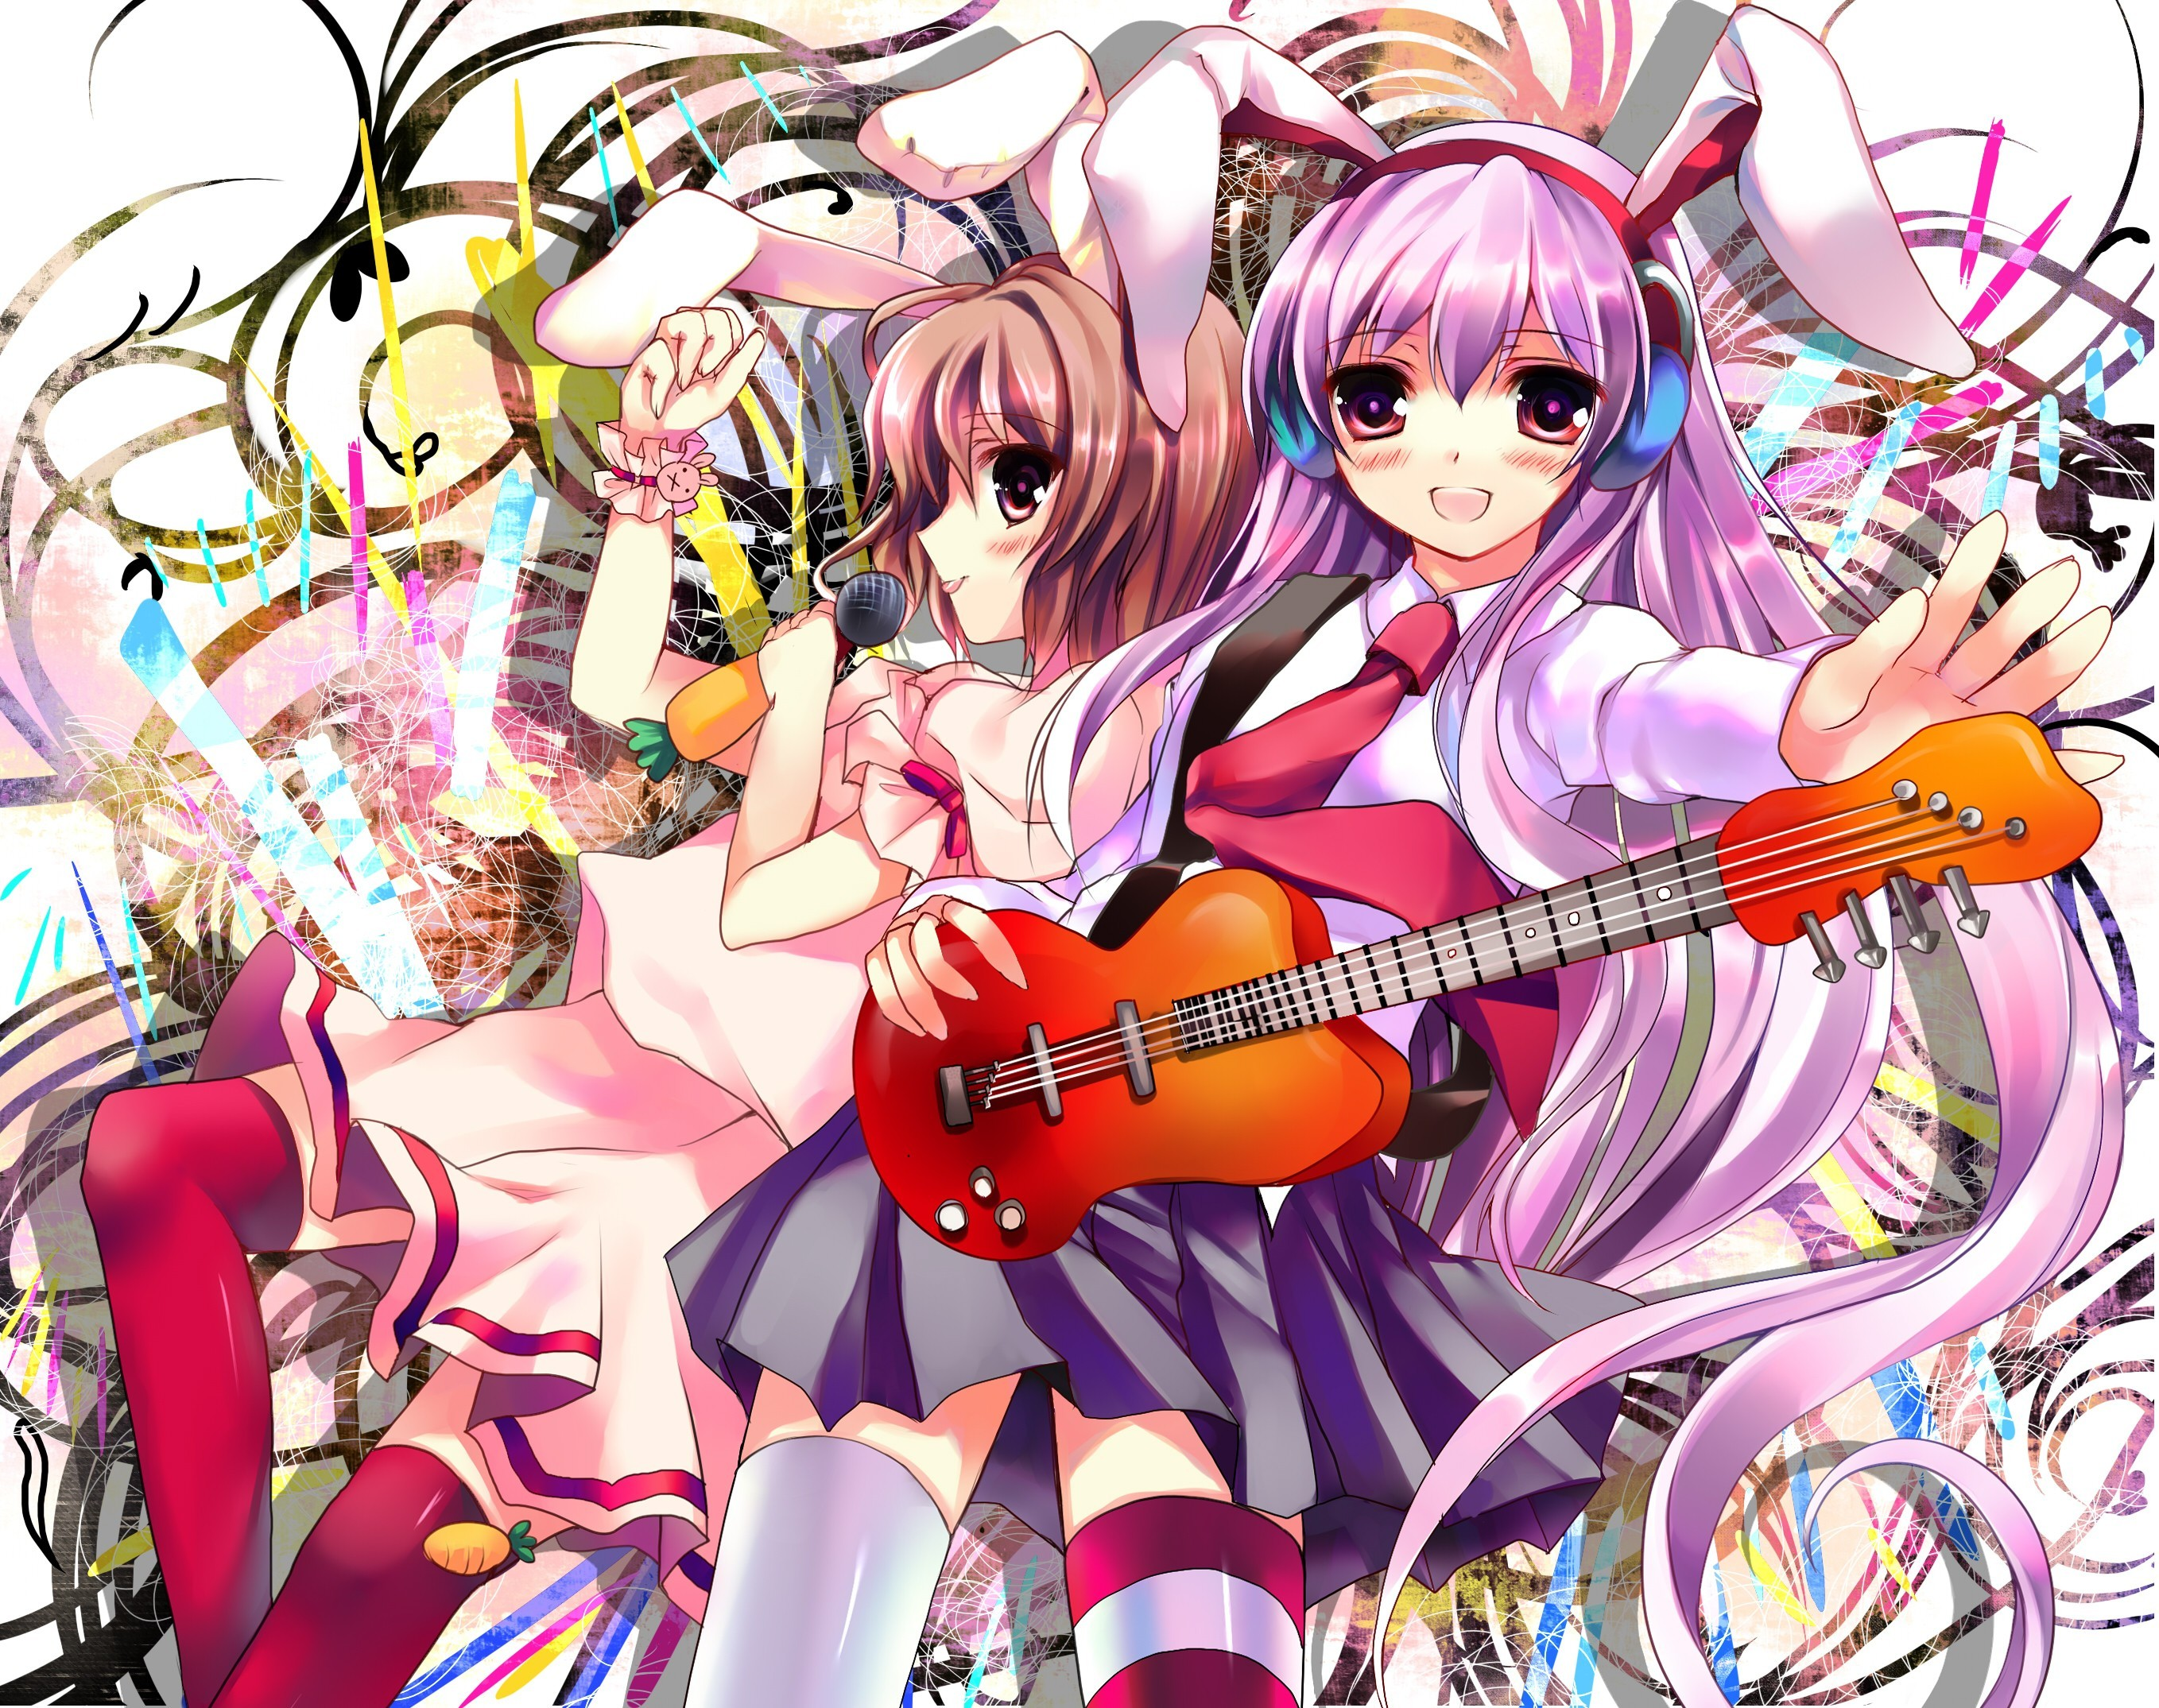 reisen udongein inaba Imperishable HD Wallpaper